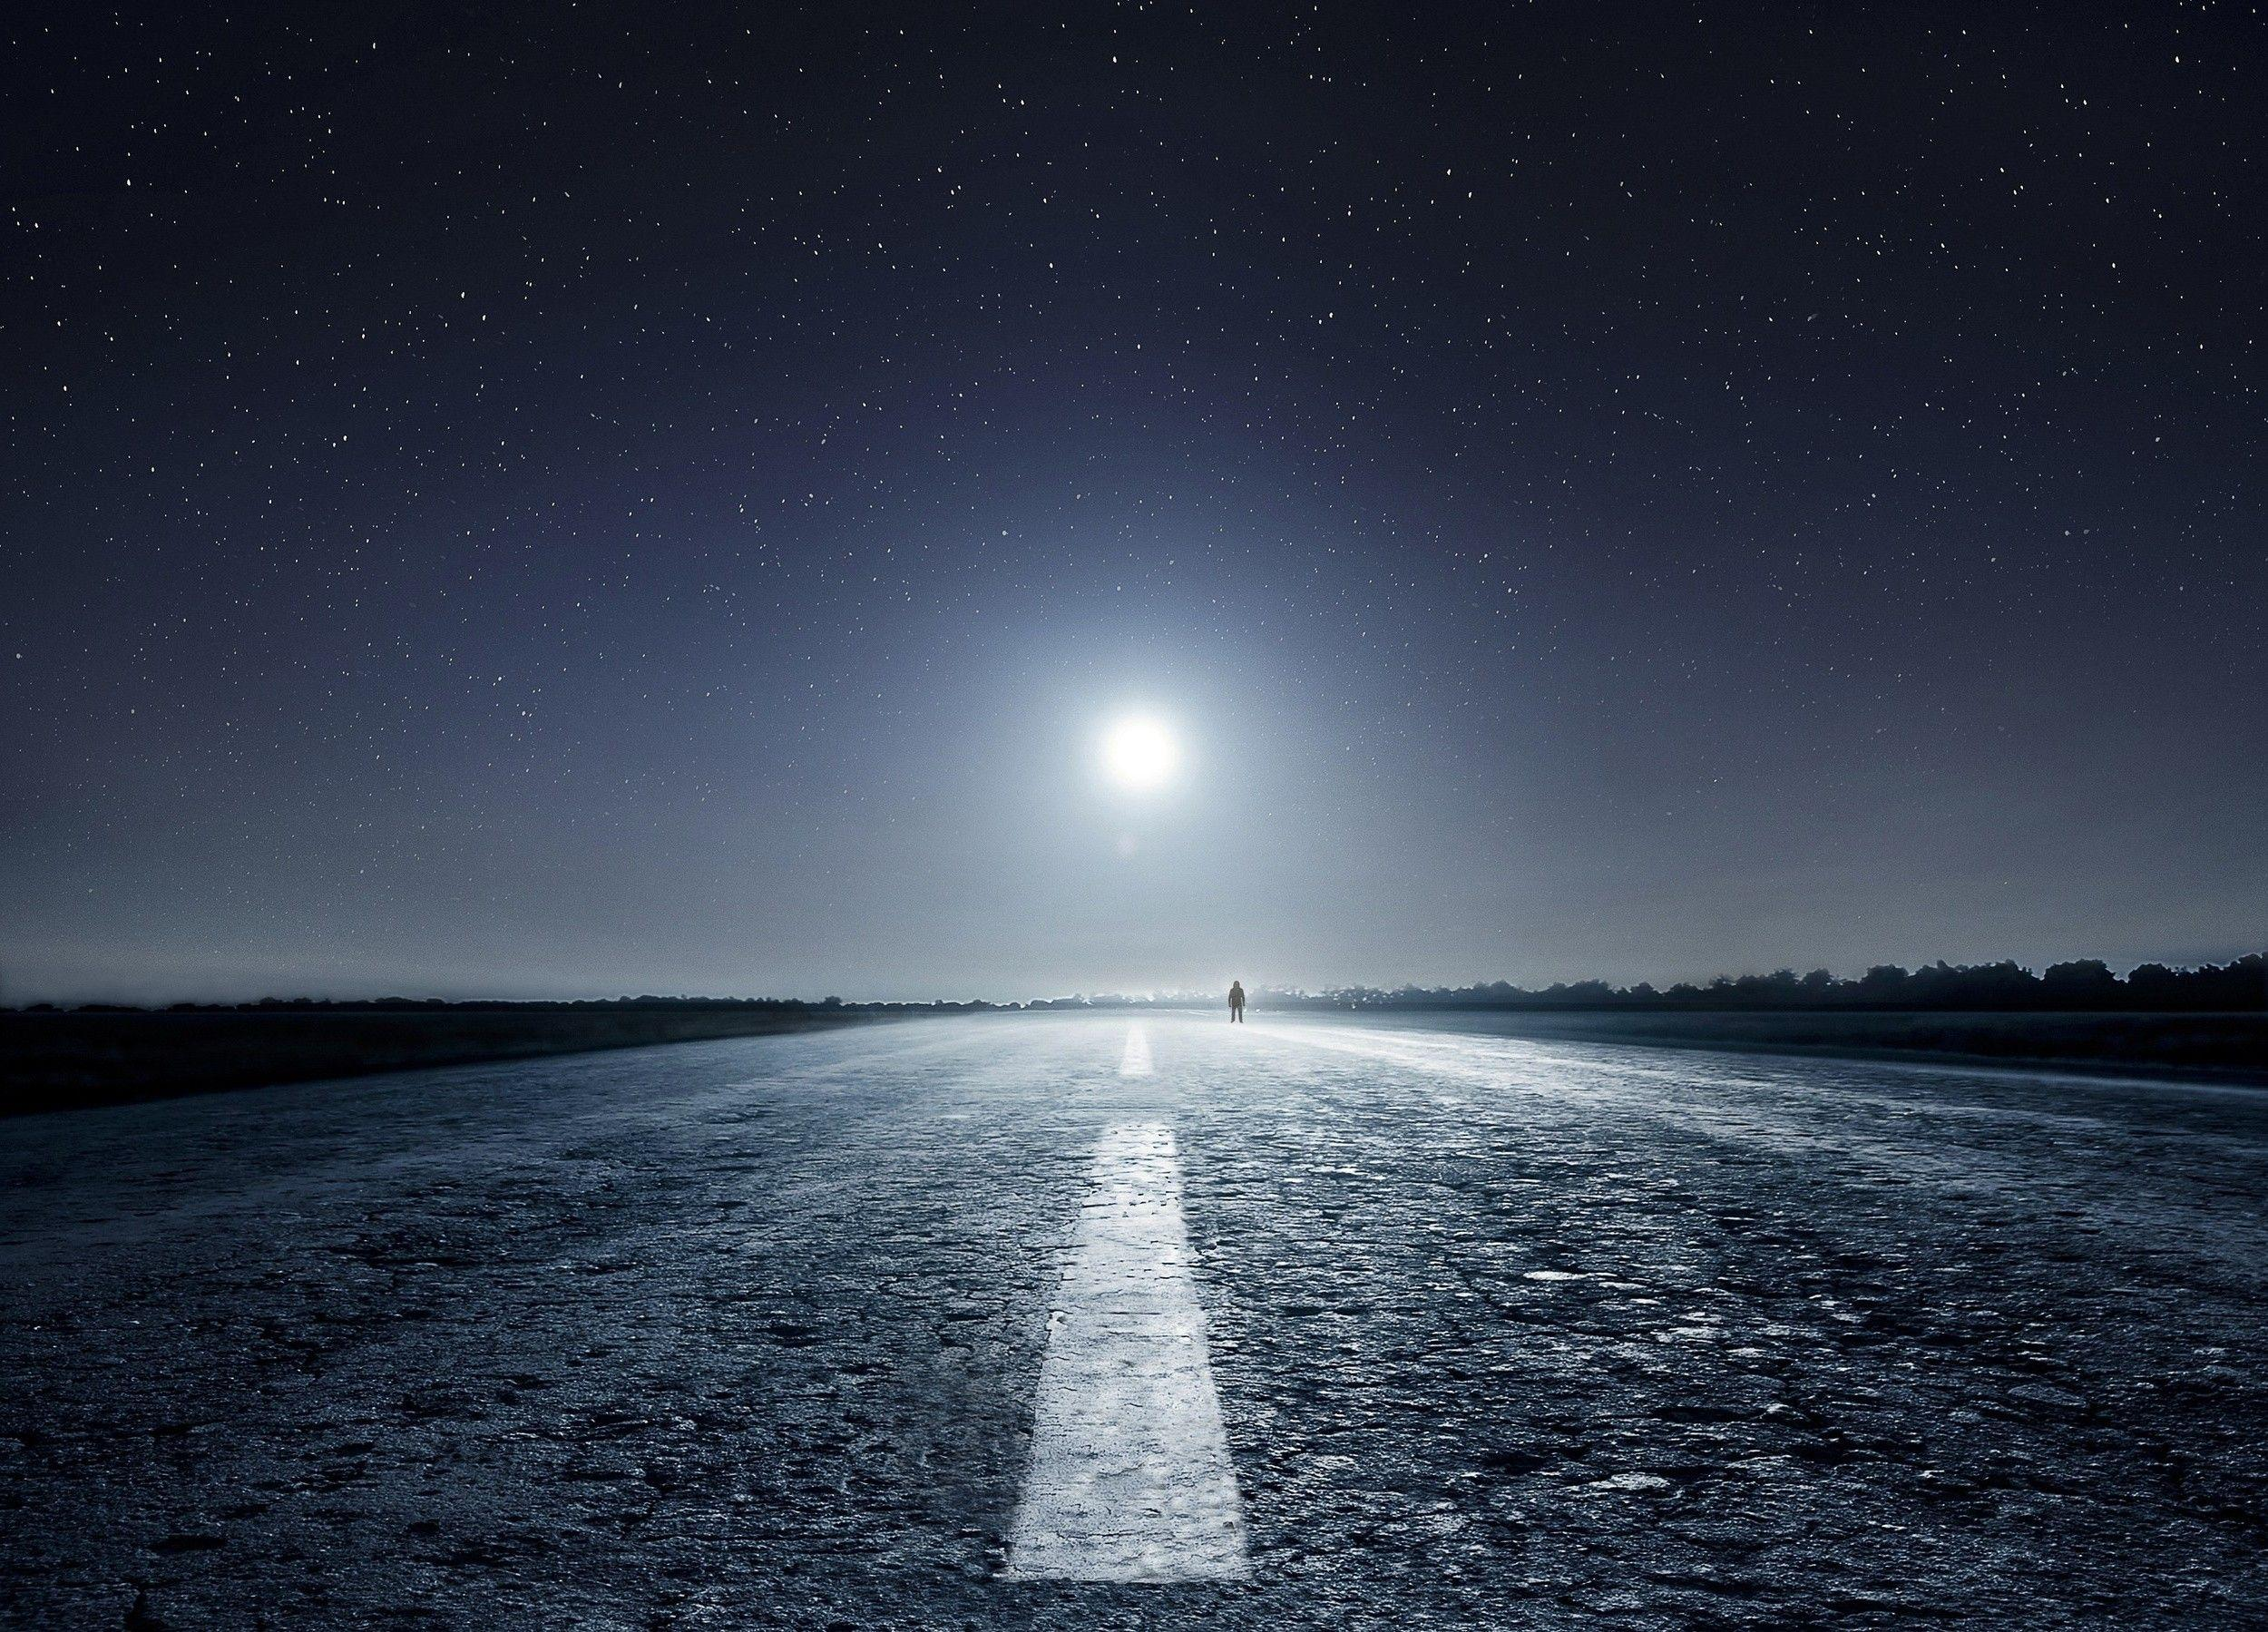 nature wallpapers night road - photo #2